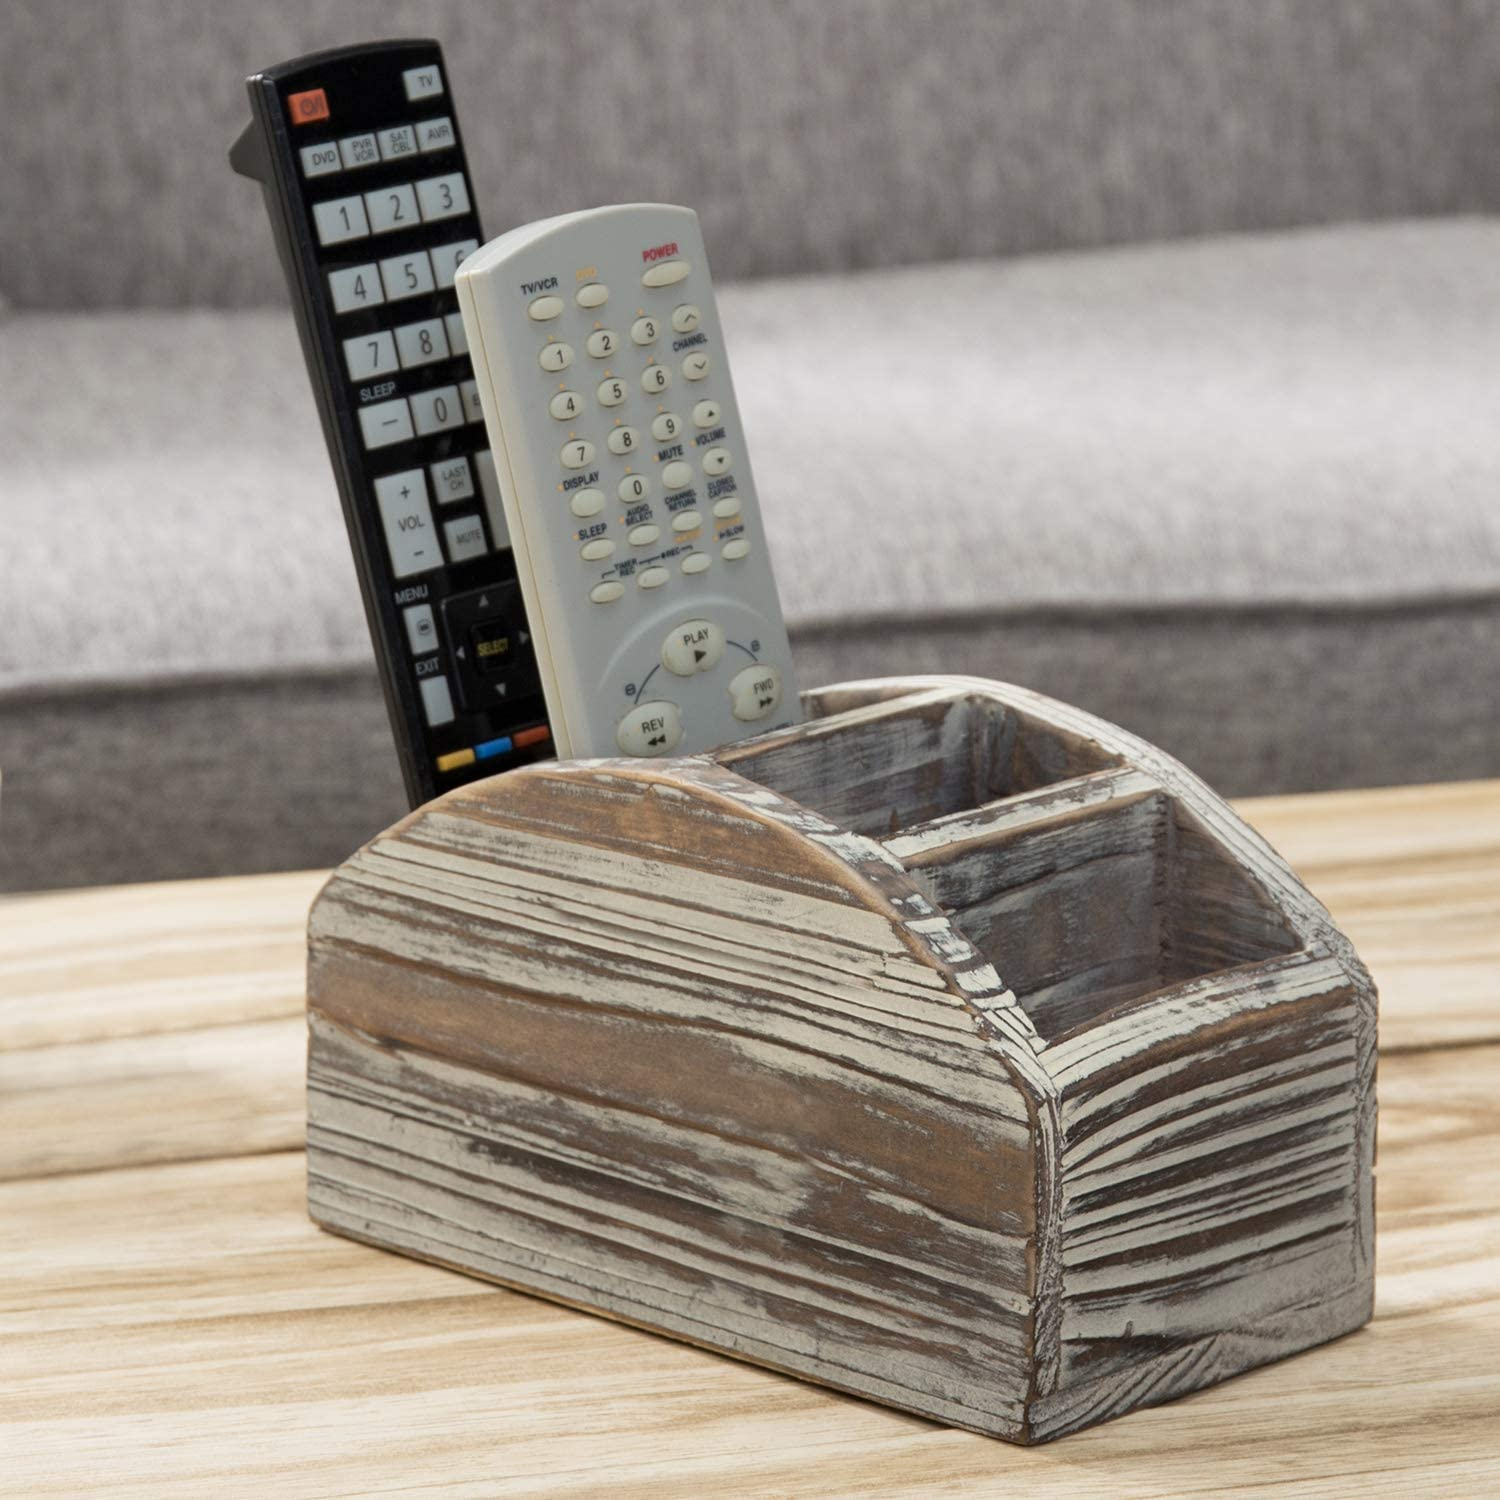 MyGift 4-Slot High order Rustic Torched Wood Control security Caddy Media Remote Dev